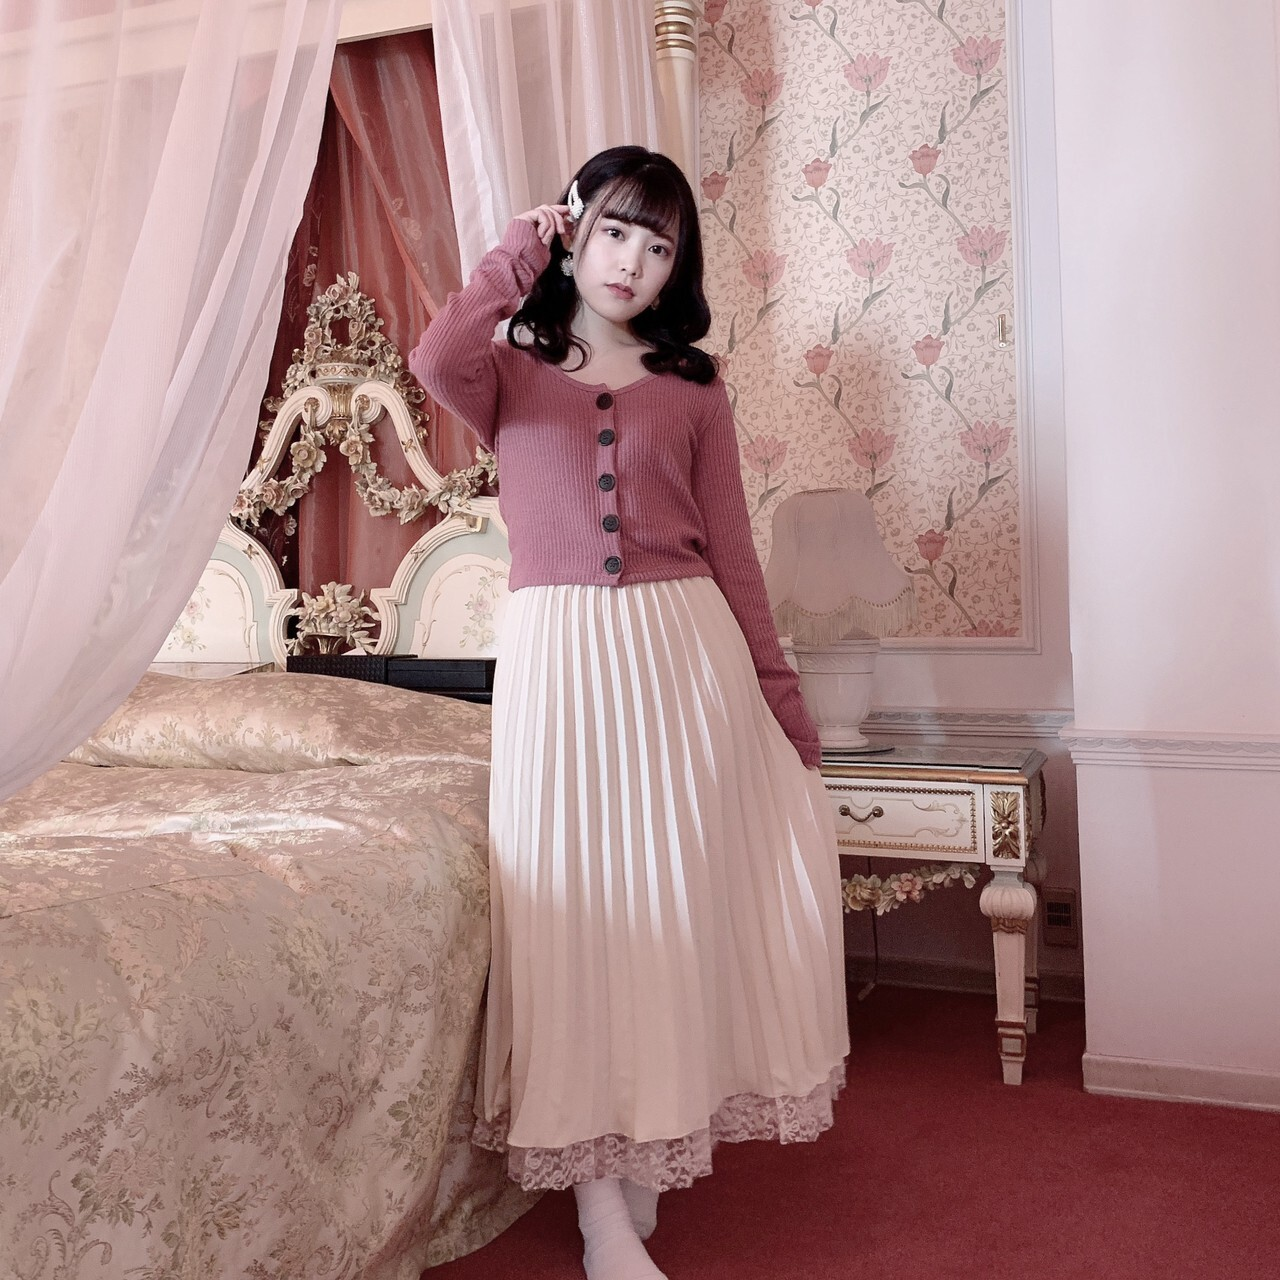 【meltie】pleats × lace 2way skirt